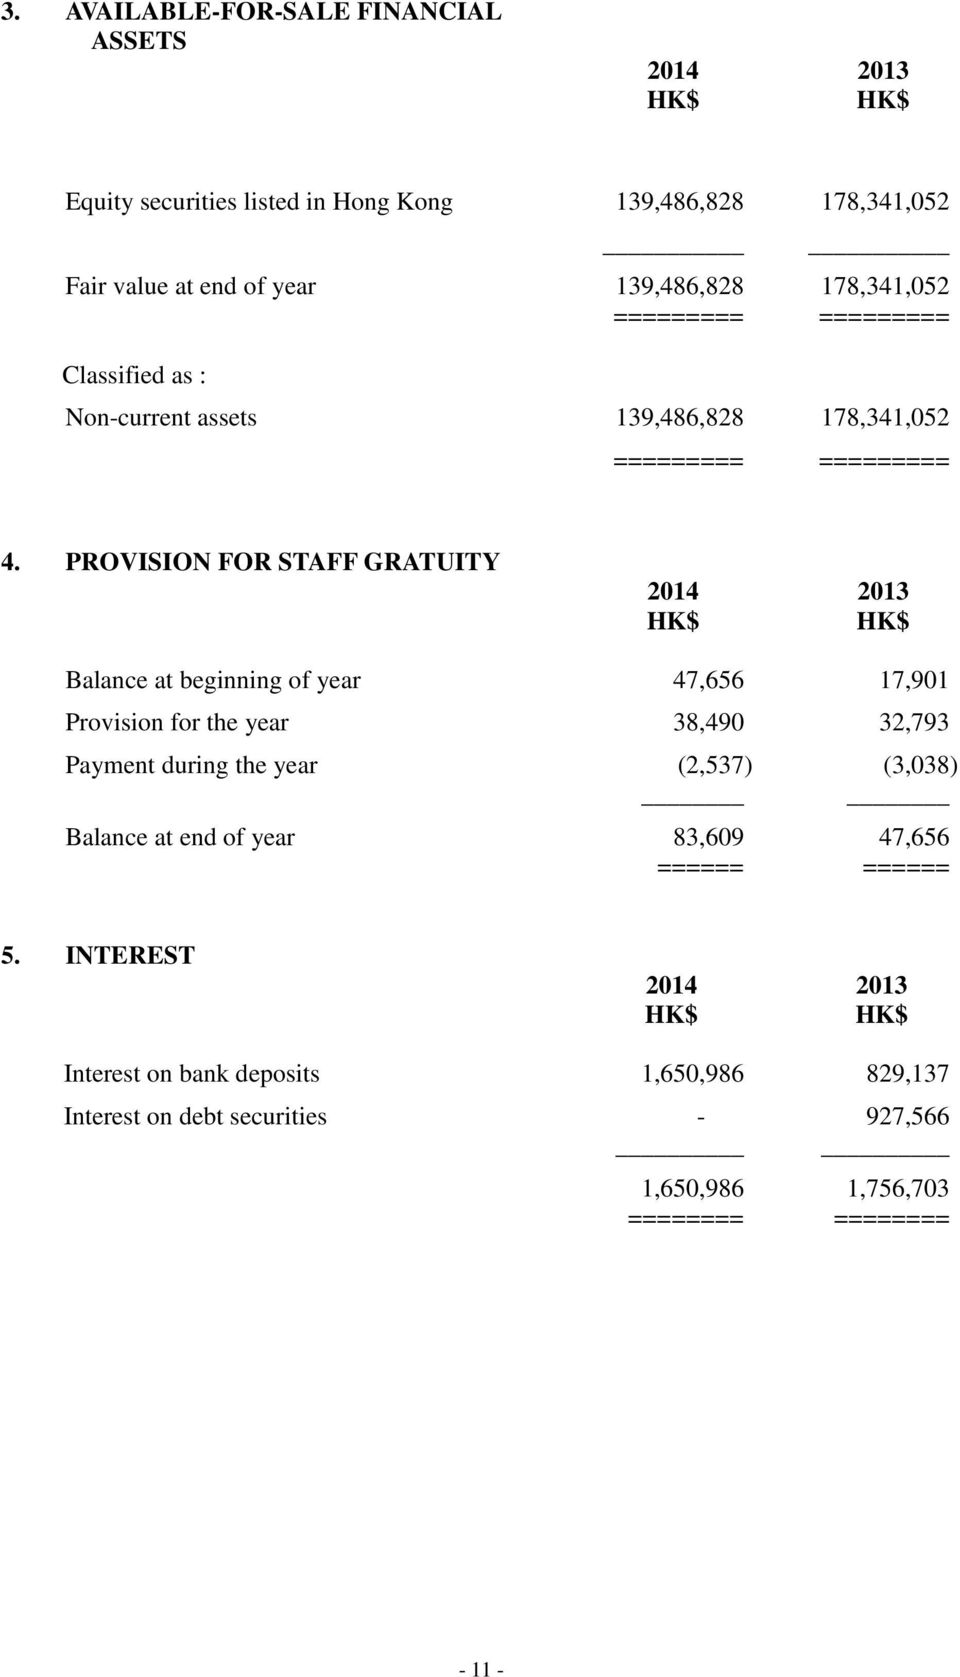 PROVISION FOR STAFF GRATUITY 2014 2013 Balance at beginning of year 47,656 17,901 Provision for the year 38,490 32,793 Payment during the year (2,537)